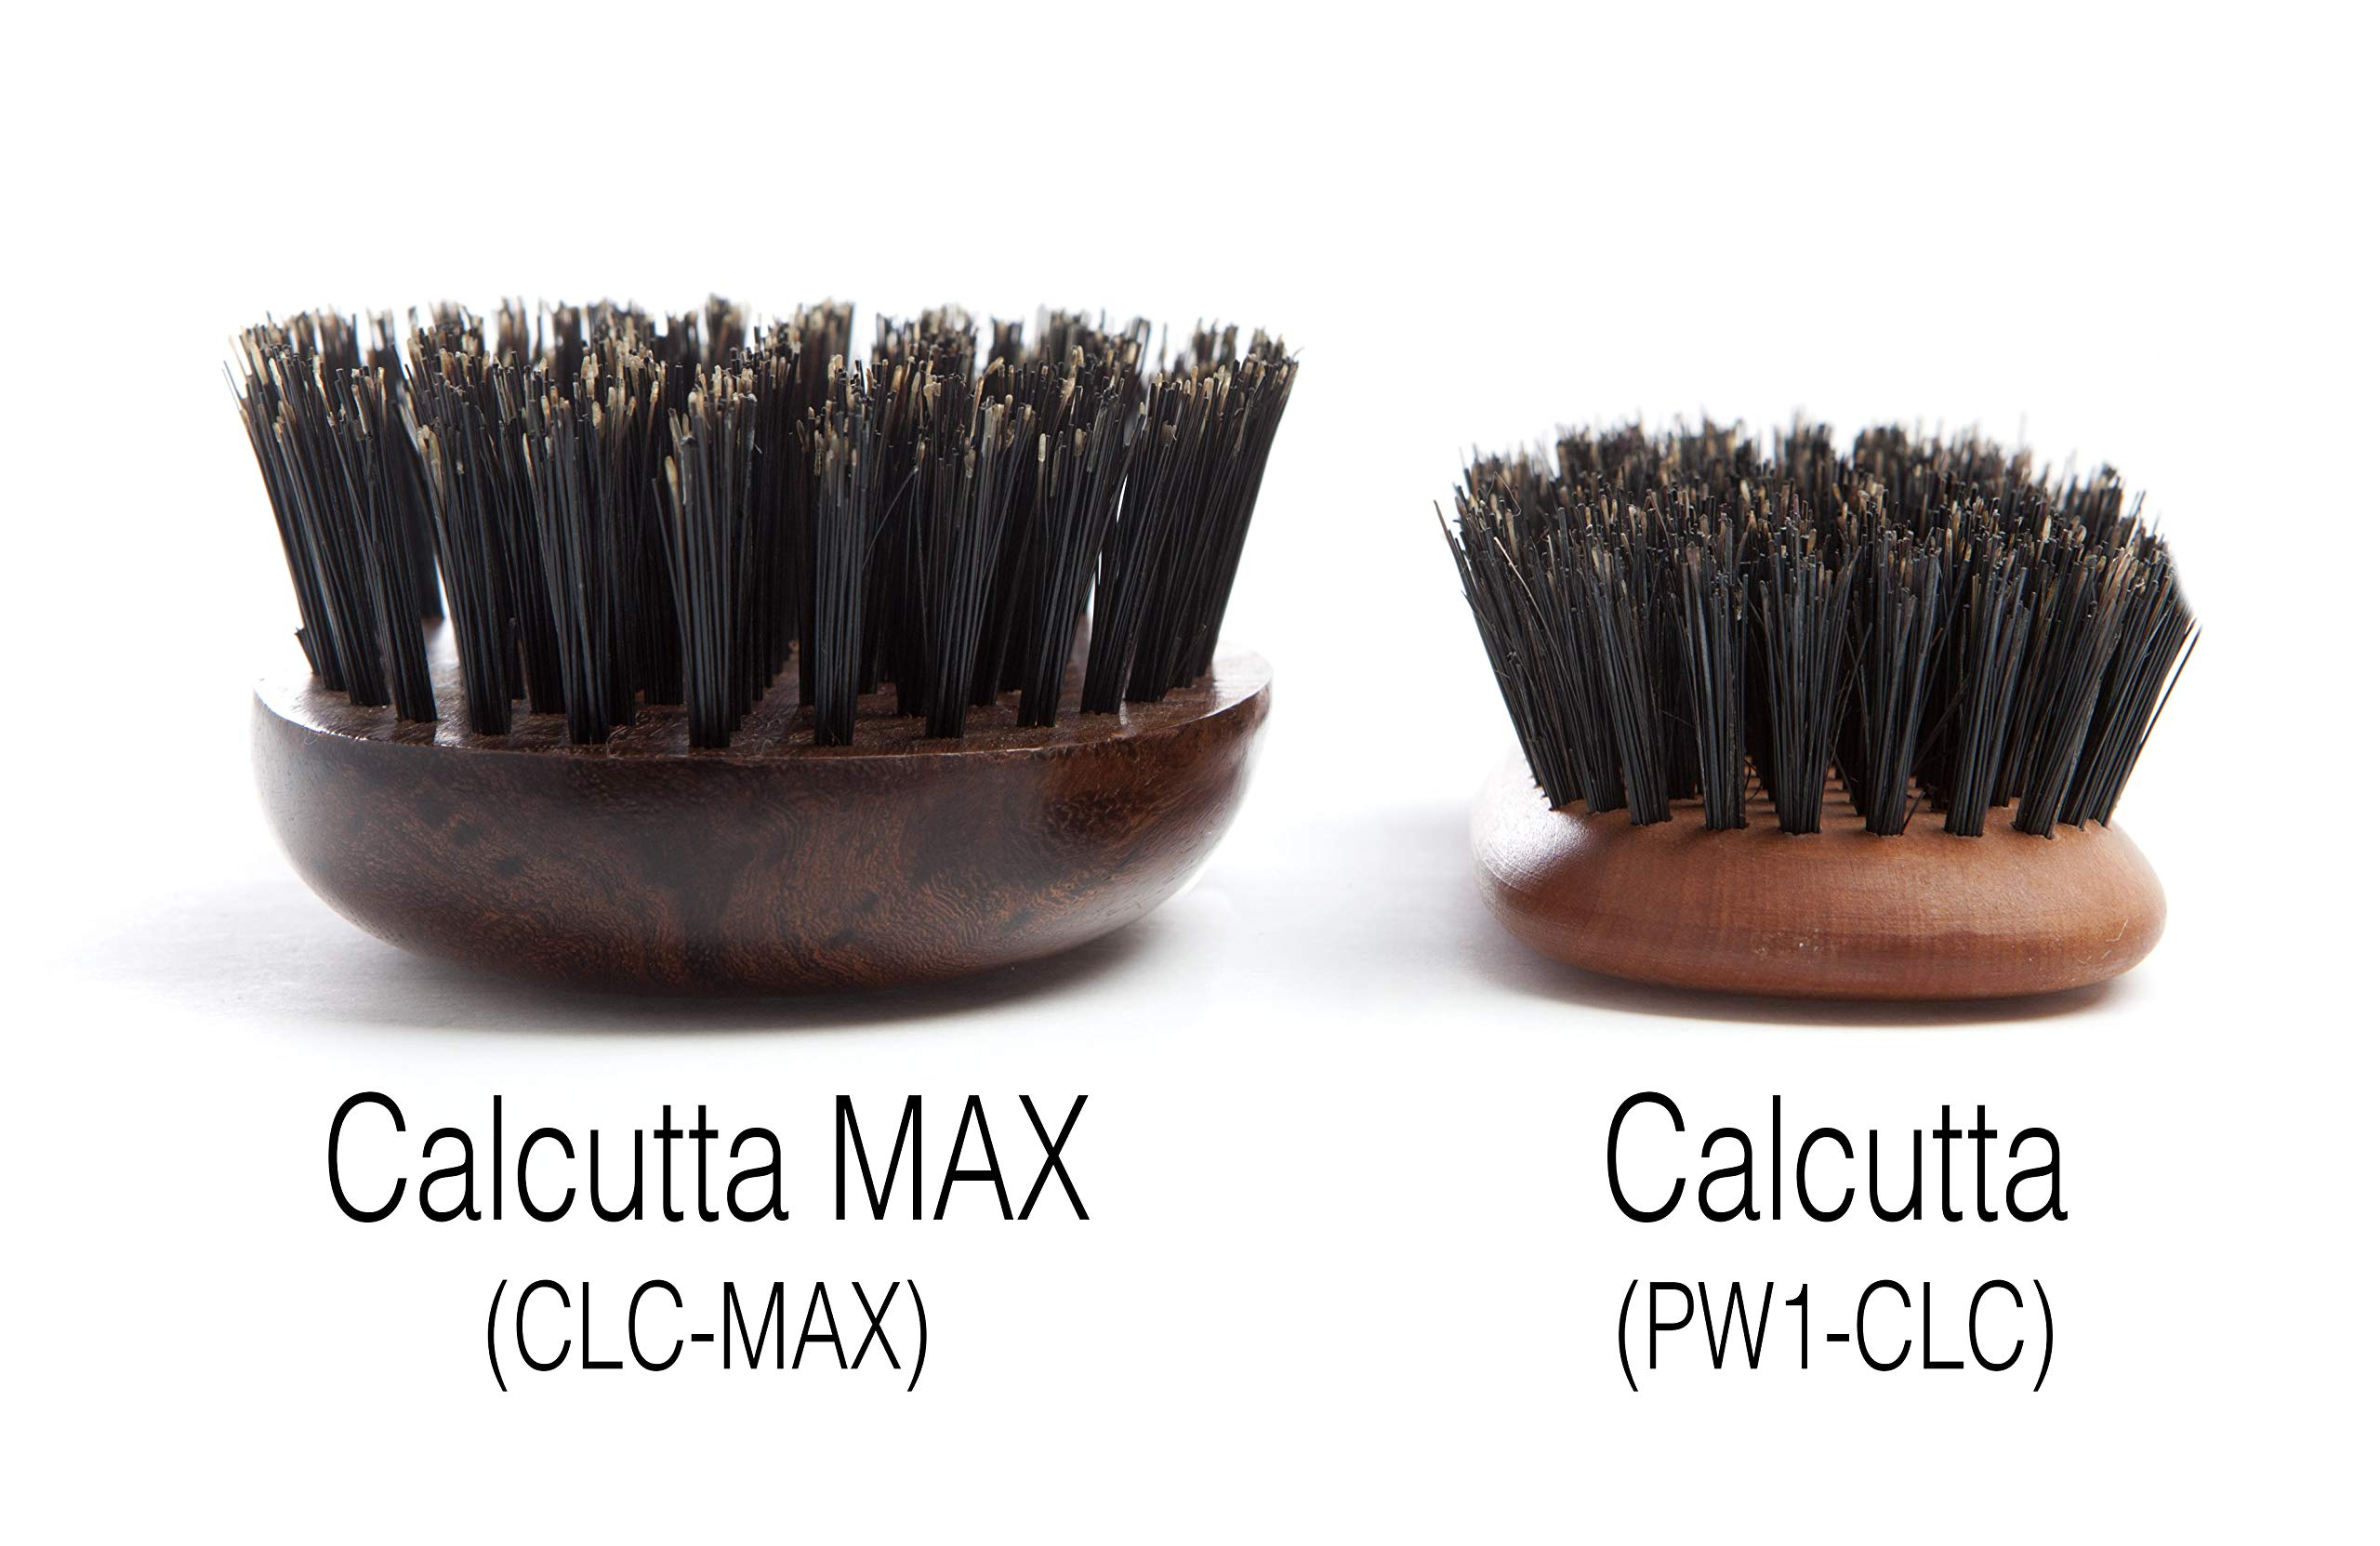 100% Pure Wild Boar Bristle Hair Brush, Calcutta Max for Thick or Long Hair, Gentle, Extra Stiff Natural Bristles, Hand Finished Indian Rosewood Handle, Tufted in USA, by Desert Breeze Distributing by Desert Breeze Distributing (Image #5)